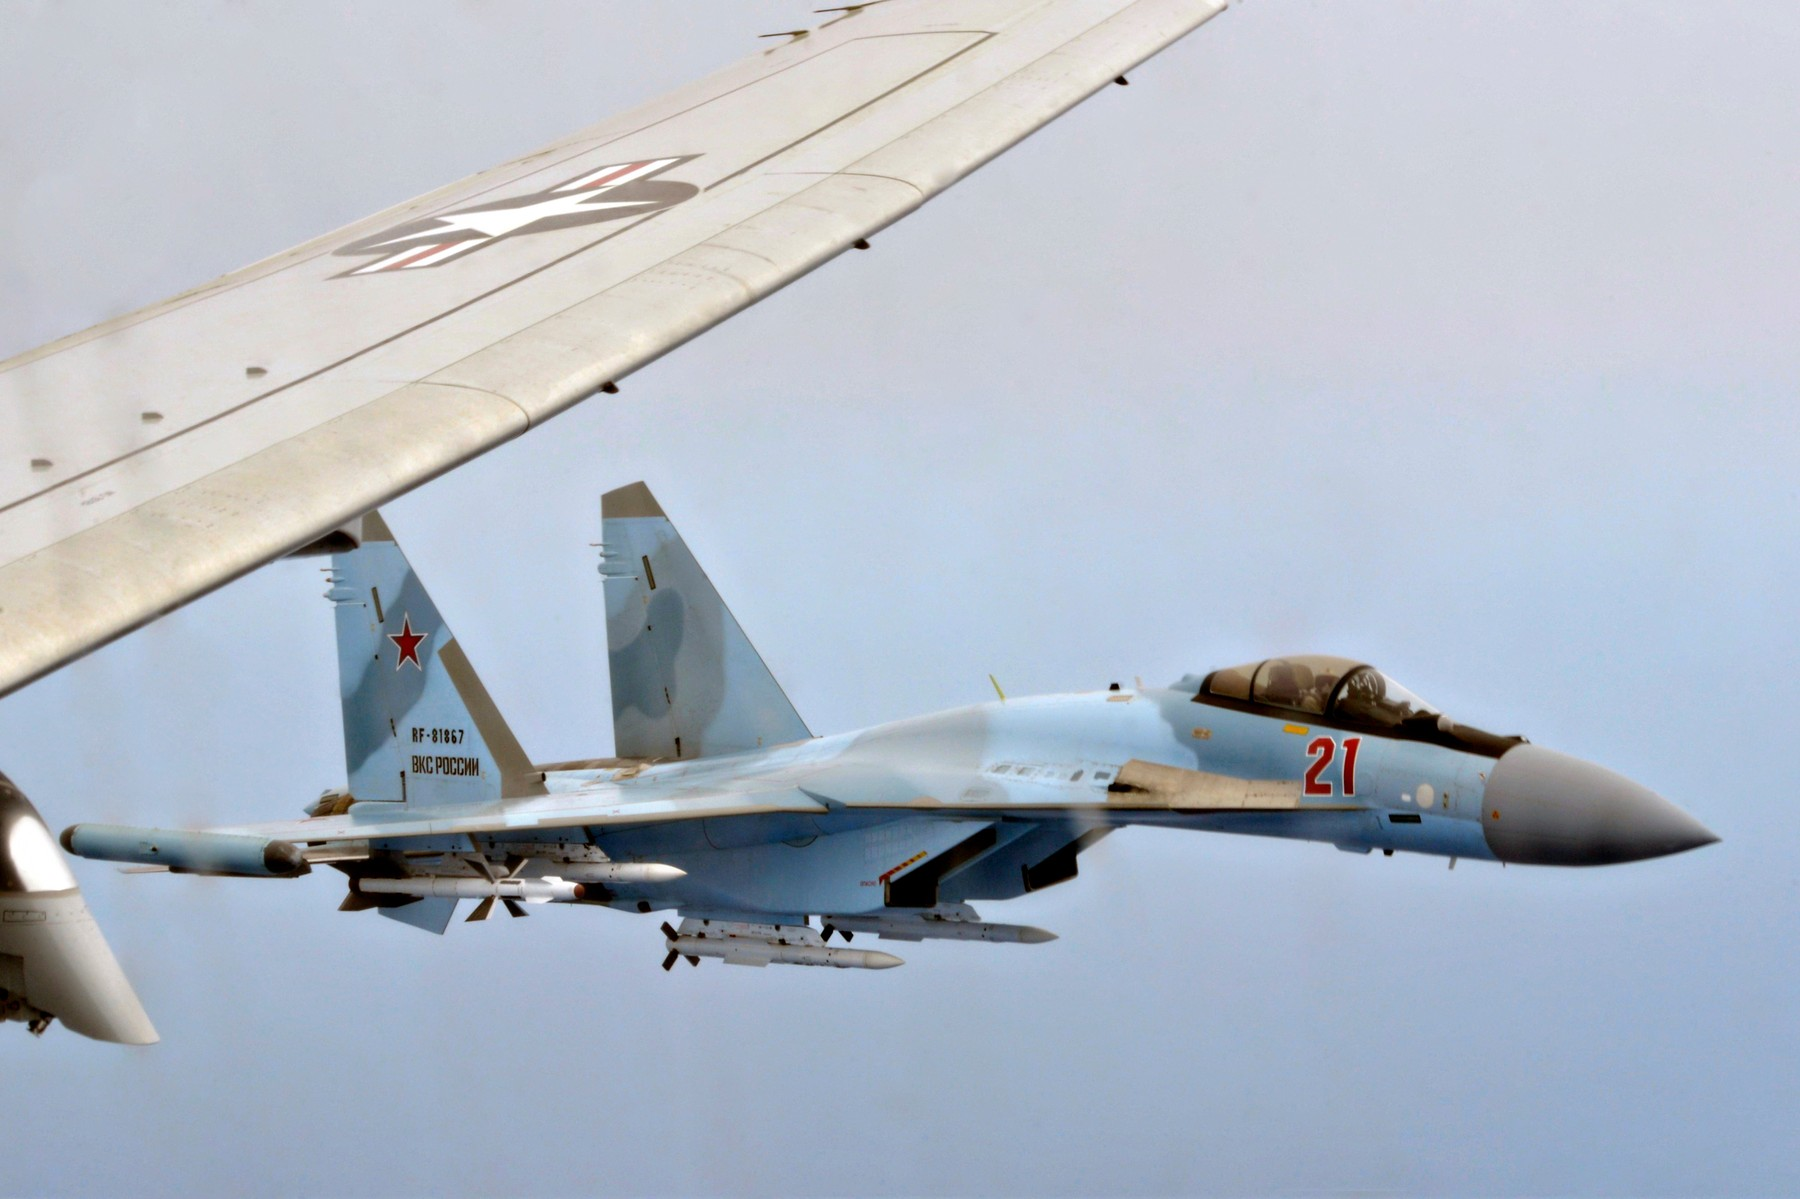 May 26, 2020, Mediterranean Sea, United States: Two Russian Su-35 Flanker-E fighter aircraft shadow at an unsafe distance, a U.S. Navy P-8A Poseidon patrol aircraft assigned to 6th Fleet May 26, 2020 over the Mediterranean Sea. May 26, 2020. The Russian intercept lasted 64 minutes and created an unsafe flight environment., Image: 522948748, License: Rights-managed, Restrictions: , Model Release: no, Credit line: Jonathan Nelson/U.S. Navy / Zuma Press / Profimedia